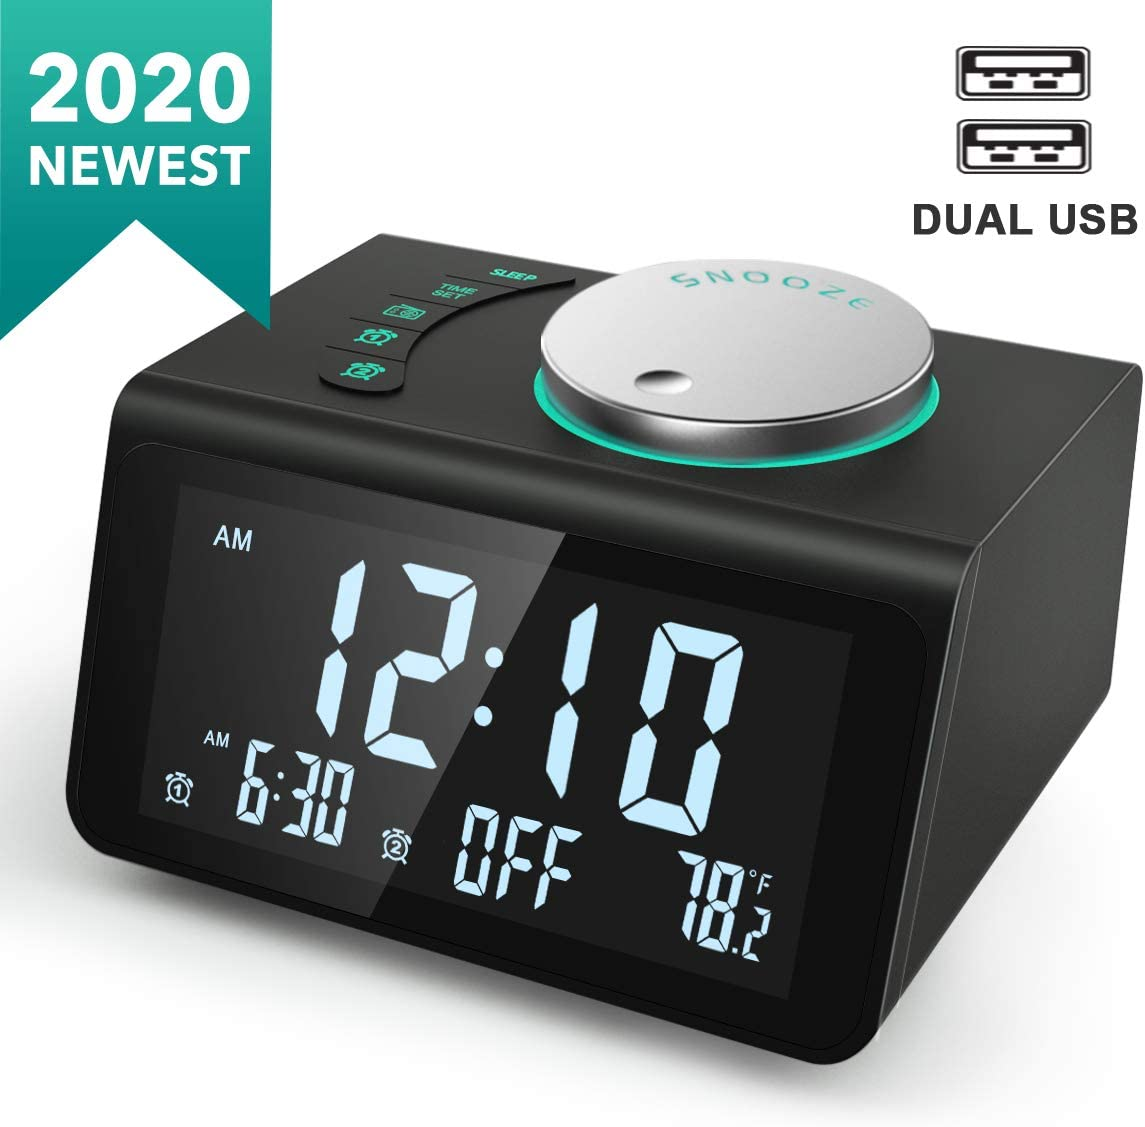 ANJANK Small Digital Alarm Clock Radio – FM Radio,Dual USB Charging Ports,Dual Alarms with 7 Alarm Sounds,Adjustable Volume,Temperature,5 Level Brightness Dimmer,Battery Backup,Bedrooms Sleep Timer